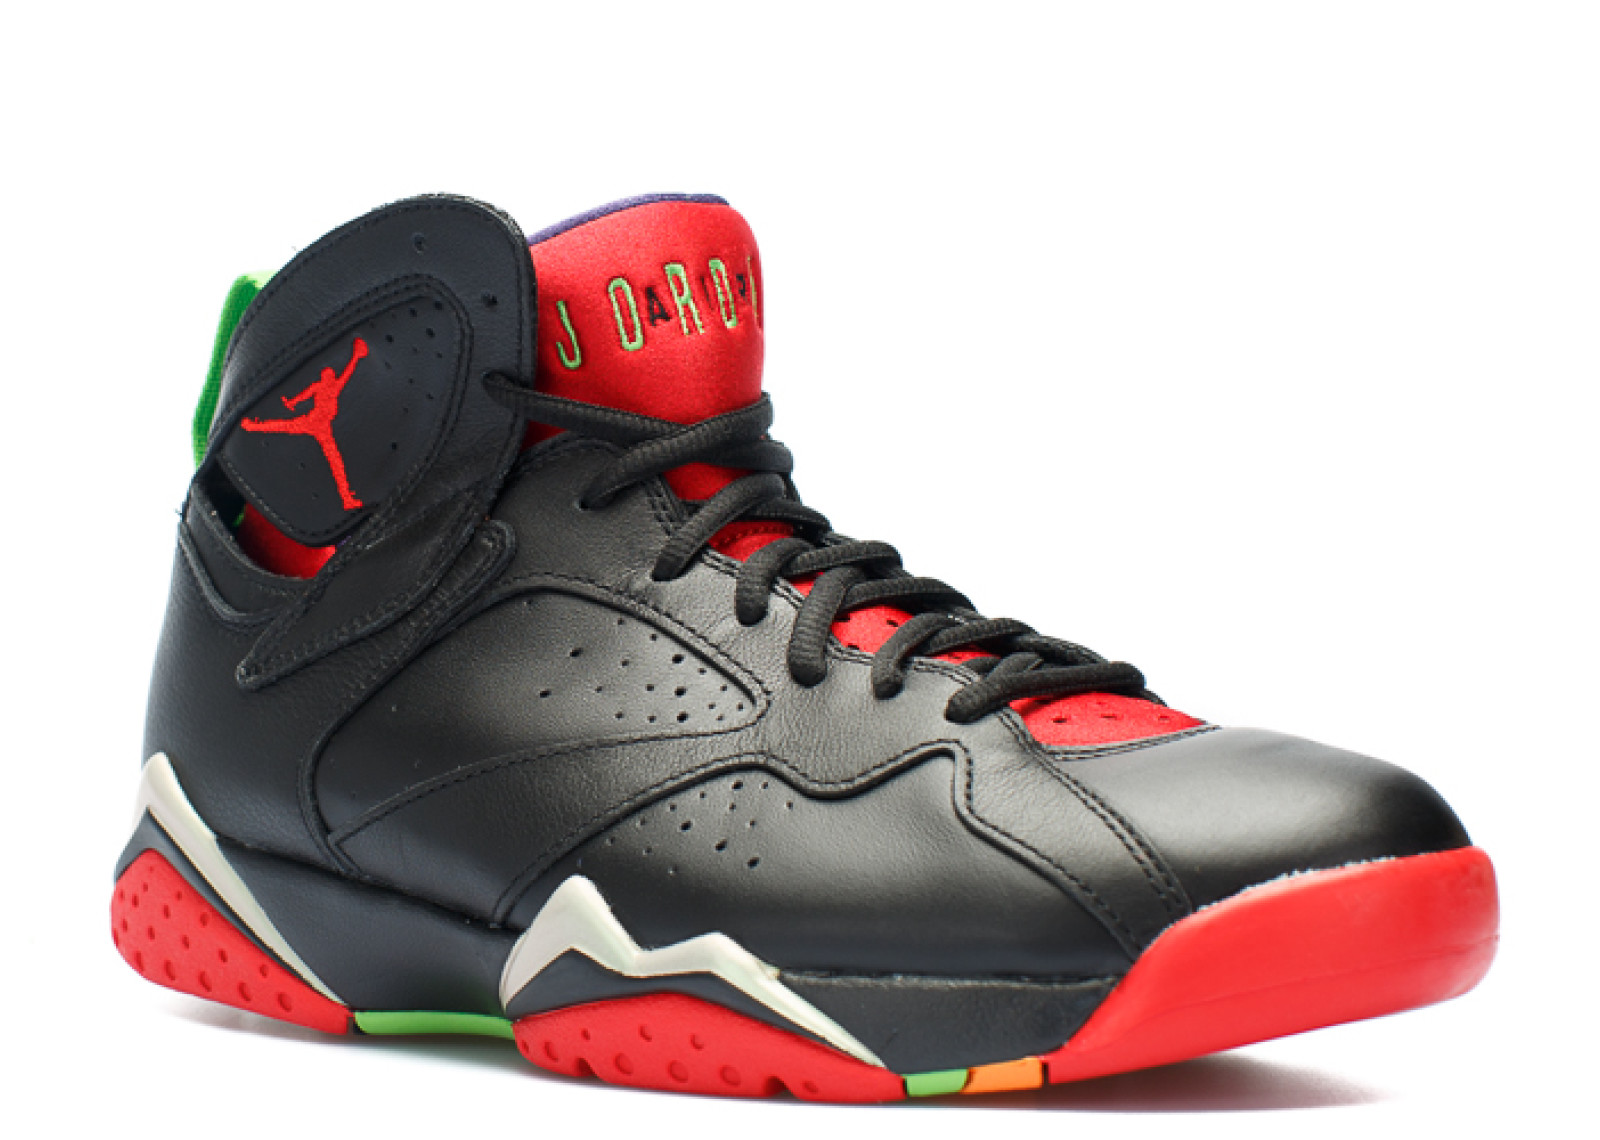 detailed look a8e7f 87e3c Air Jordan - Men - Air Jordan 7 Retro  Marvin The Martian  - 304775-029 -  Size 8.5